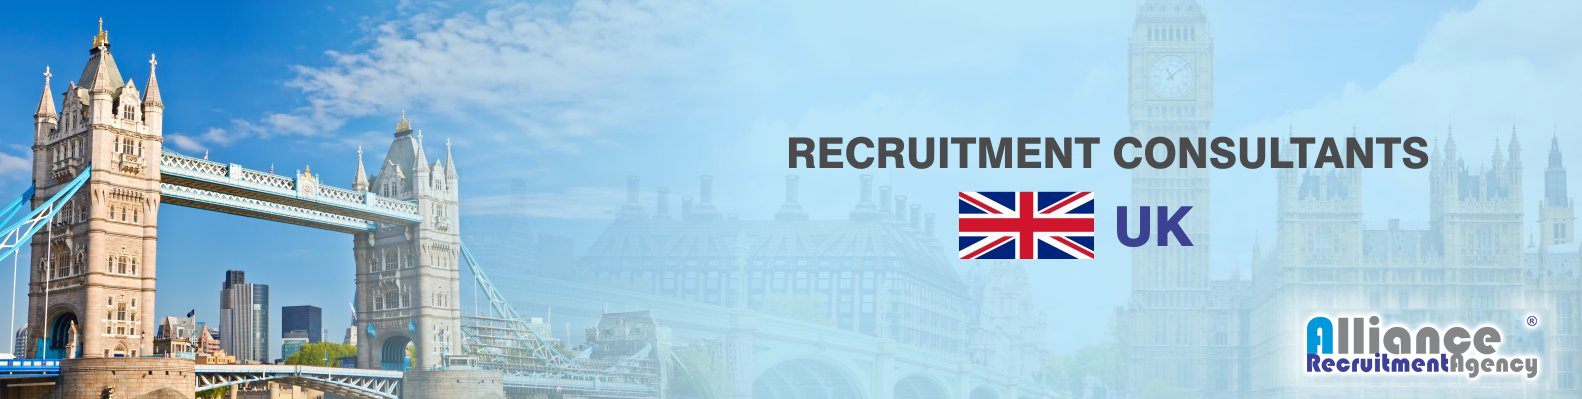 recruitment agency uk